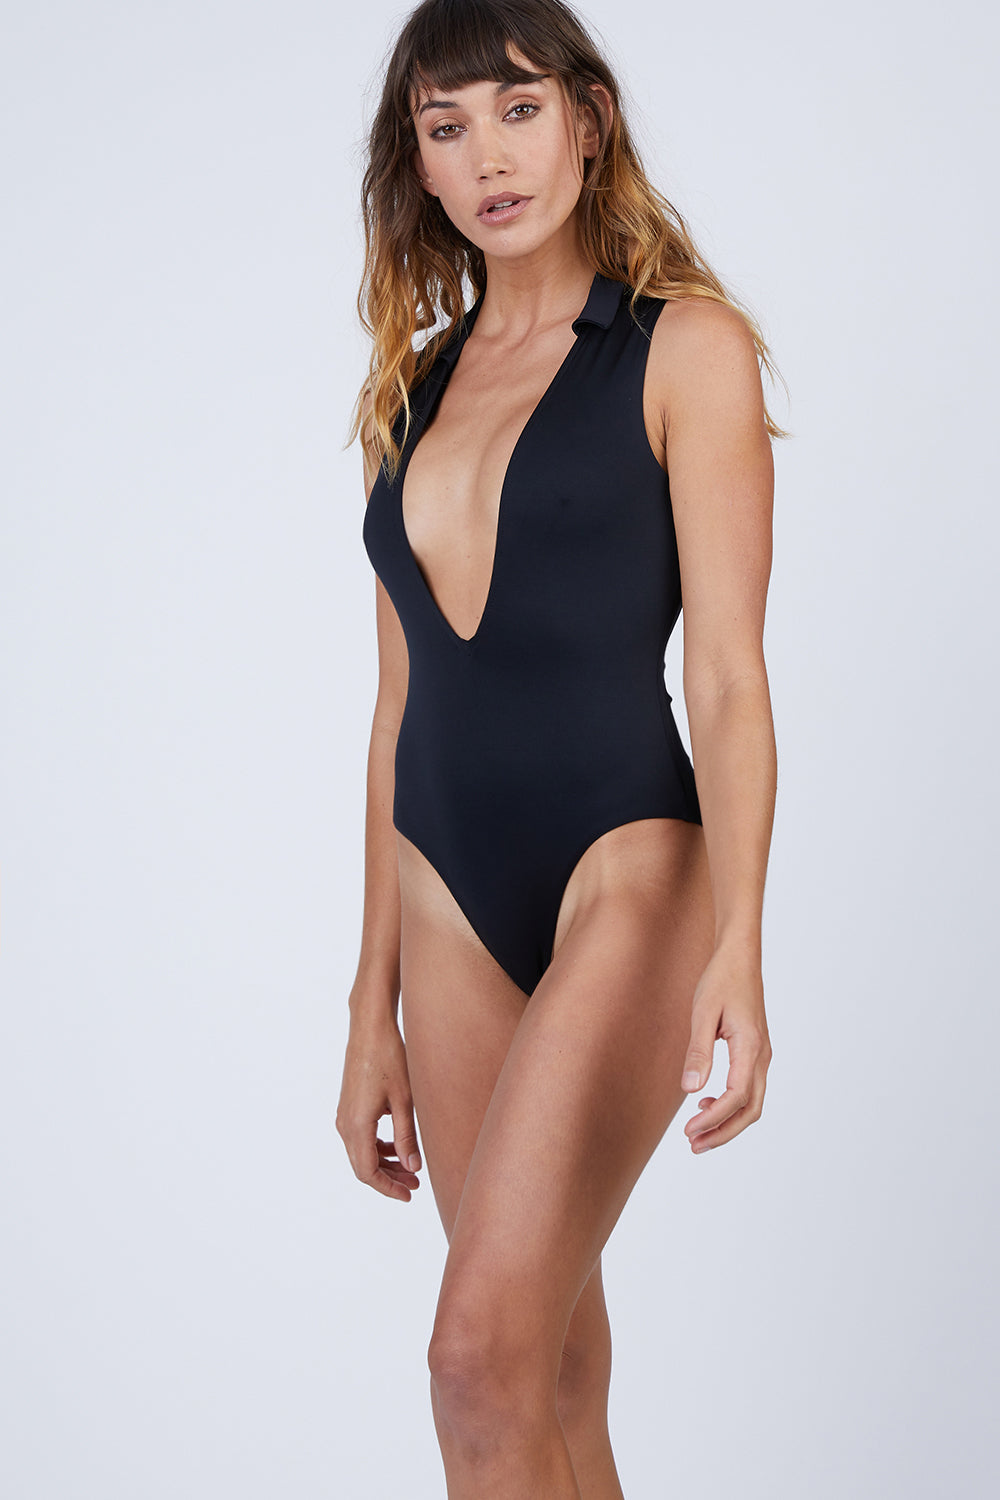 2065eba5dd1 AMAIO SWIM Colette Plunging One Piece Swimsuit - Black - undefined  undefined ...